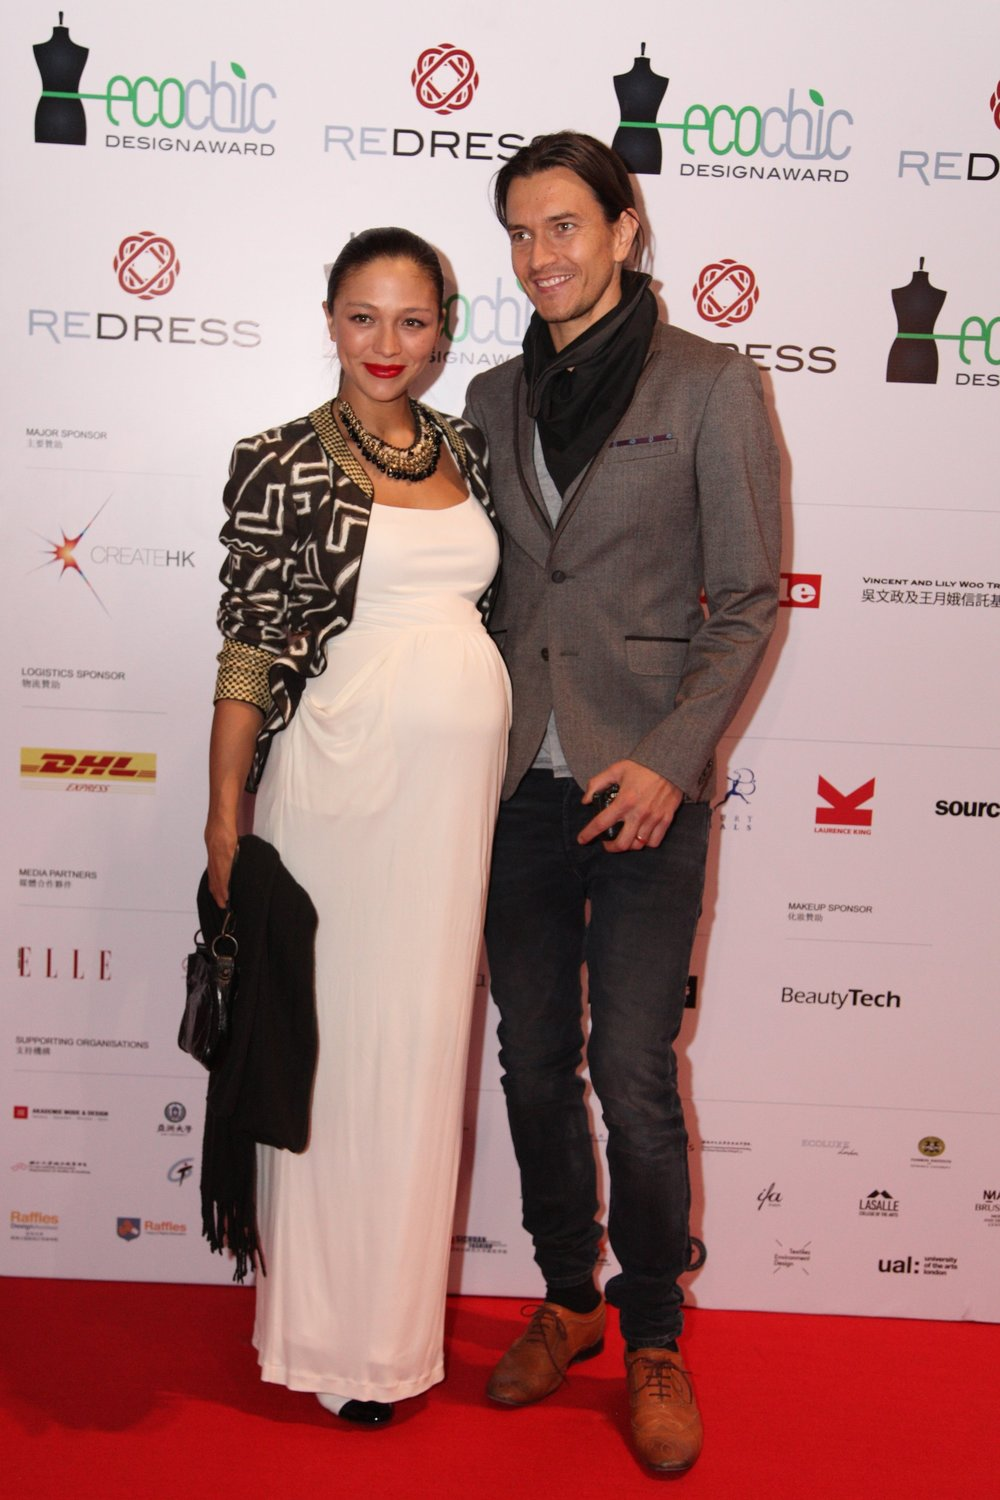 Hong Kong supermodel Cara G. McIlroy and her husband attend the Redress Design Award 2013 Grand Final Show